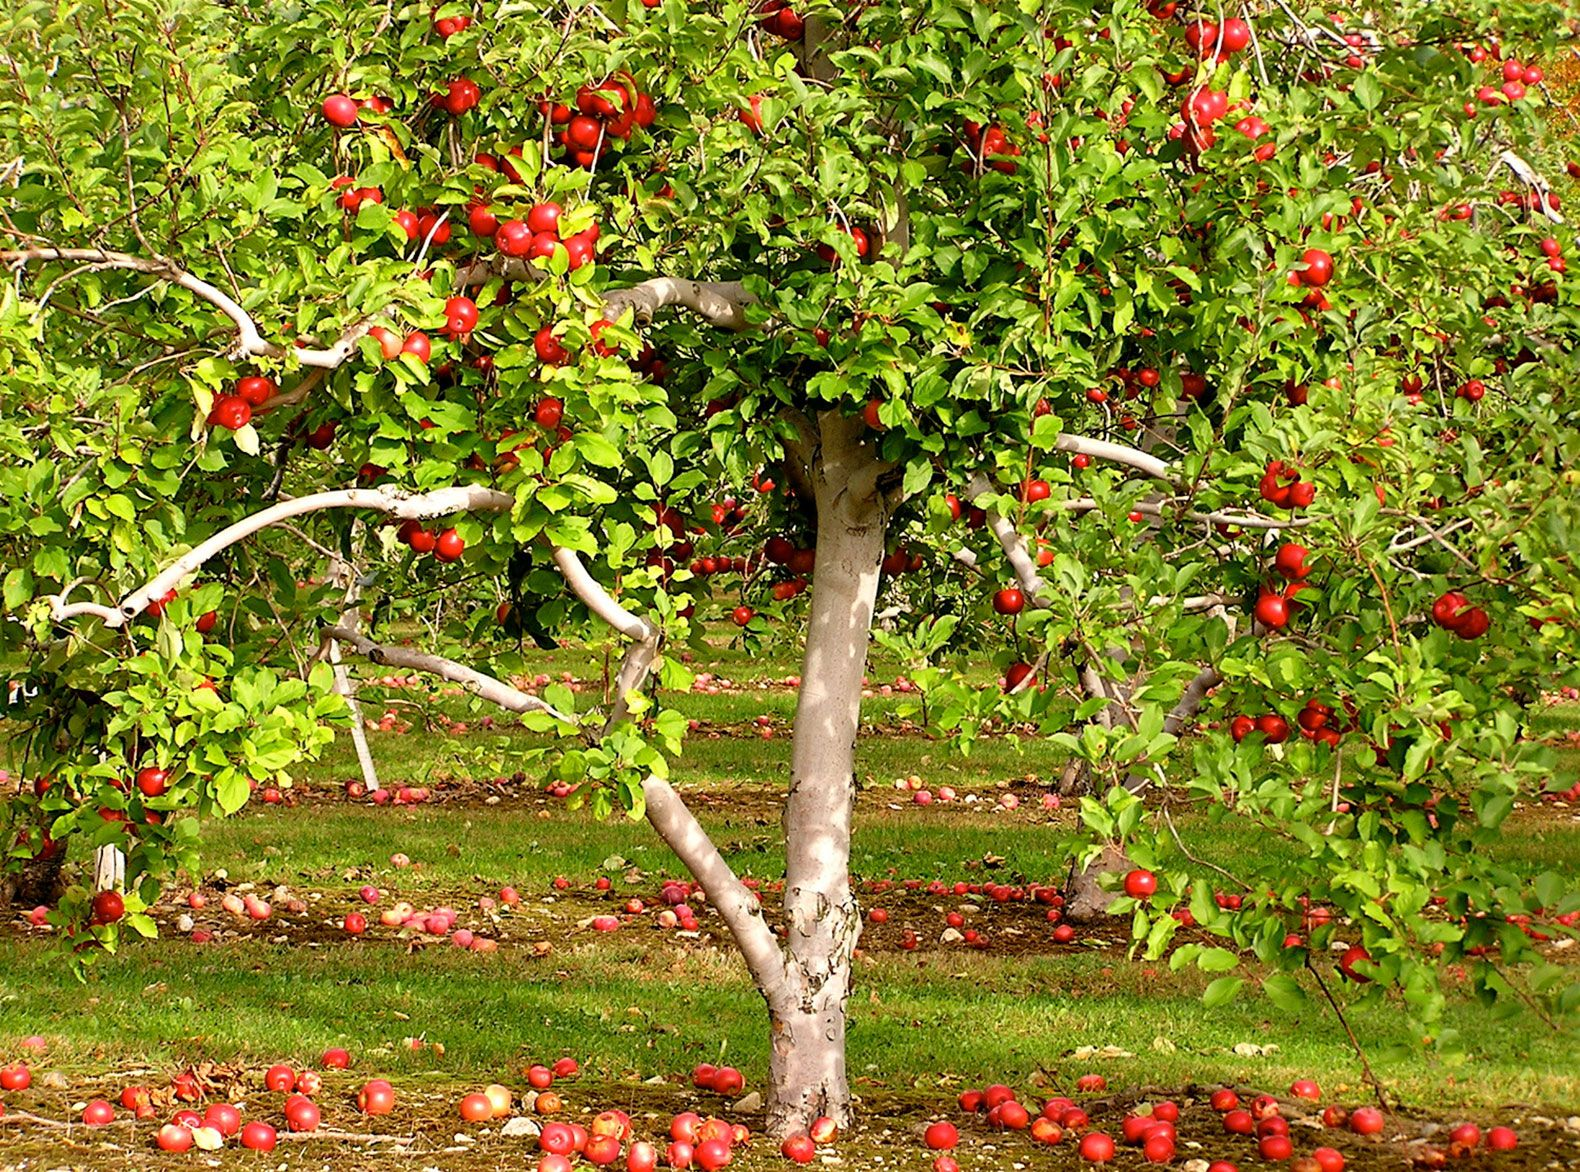 5 surprisingly easy edible gardening projects for spring apple tree